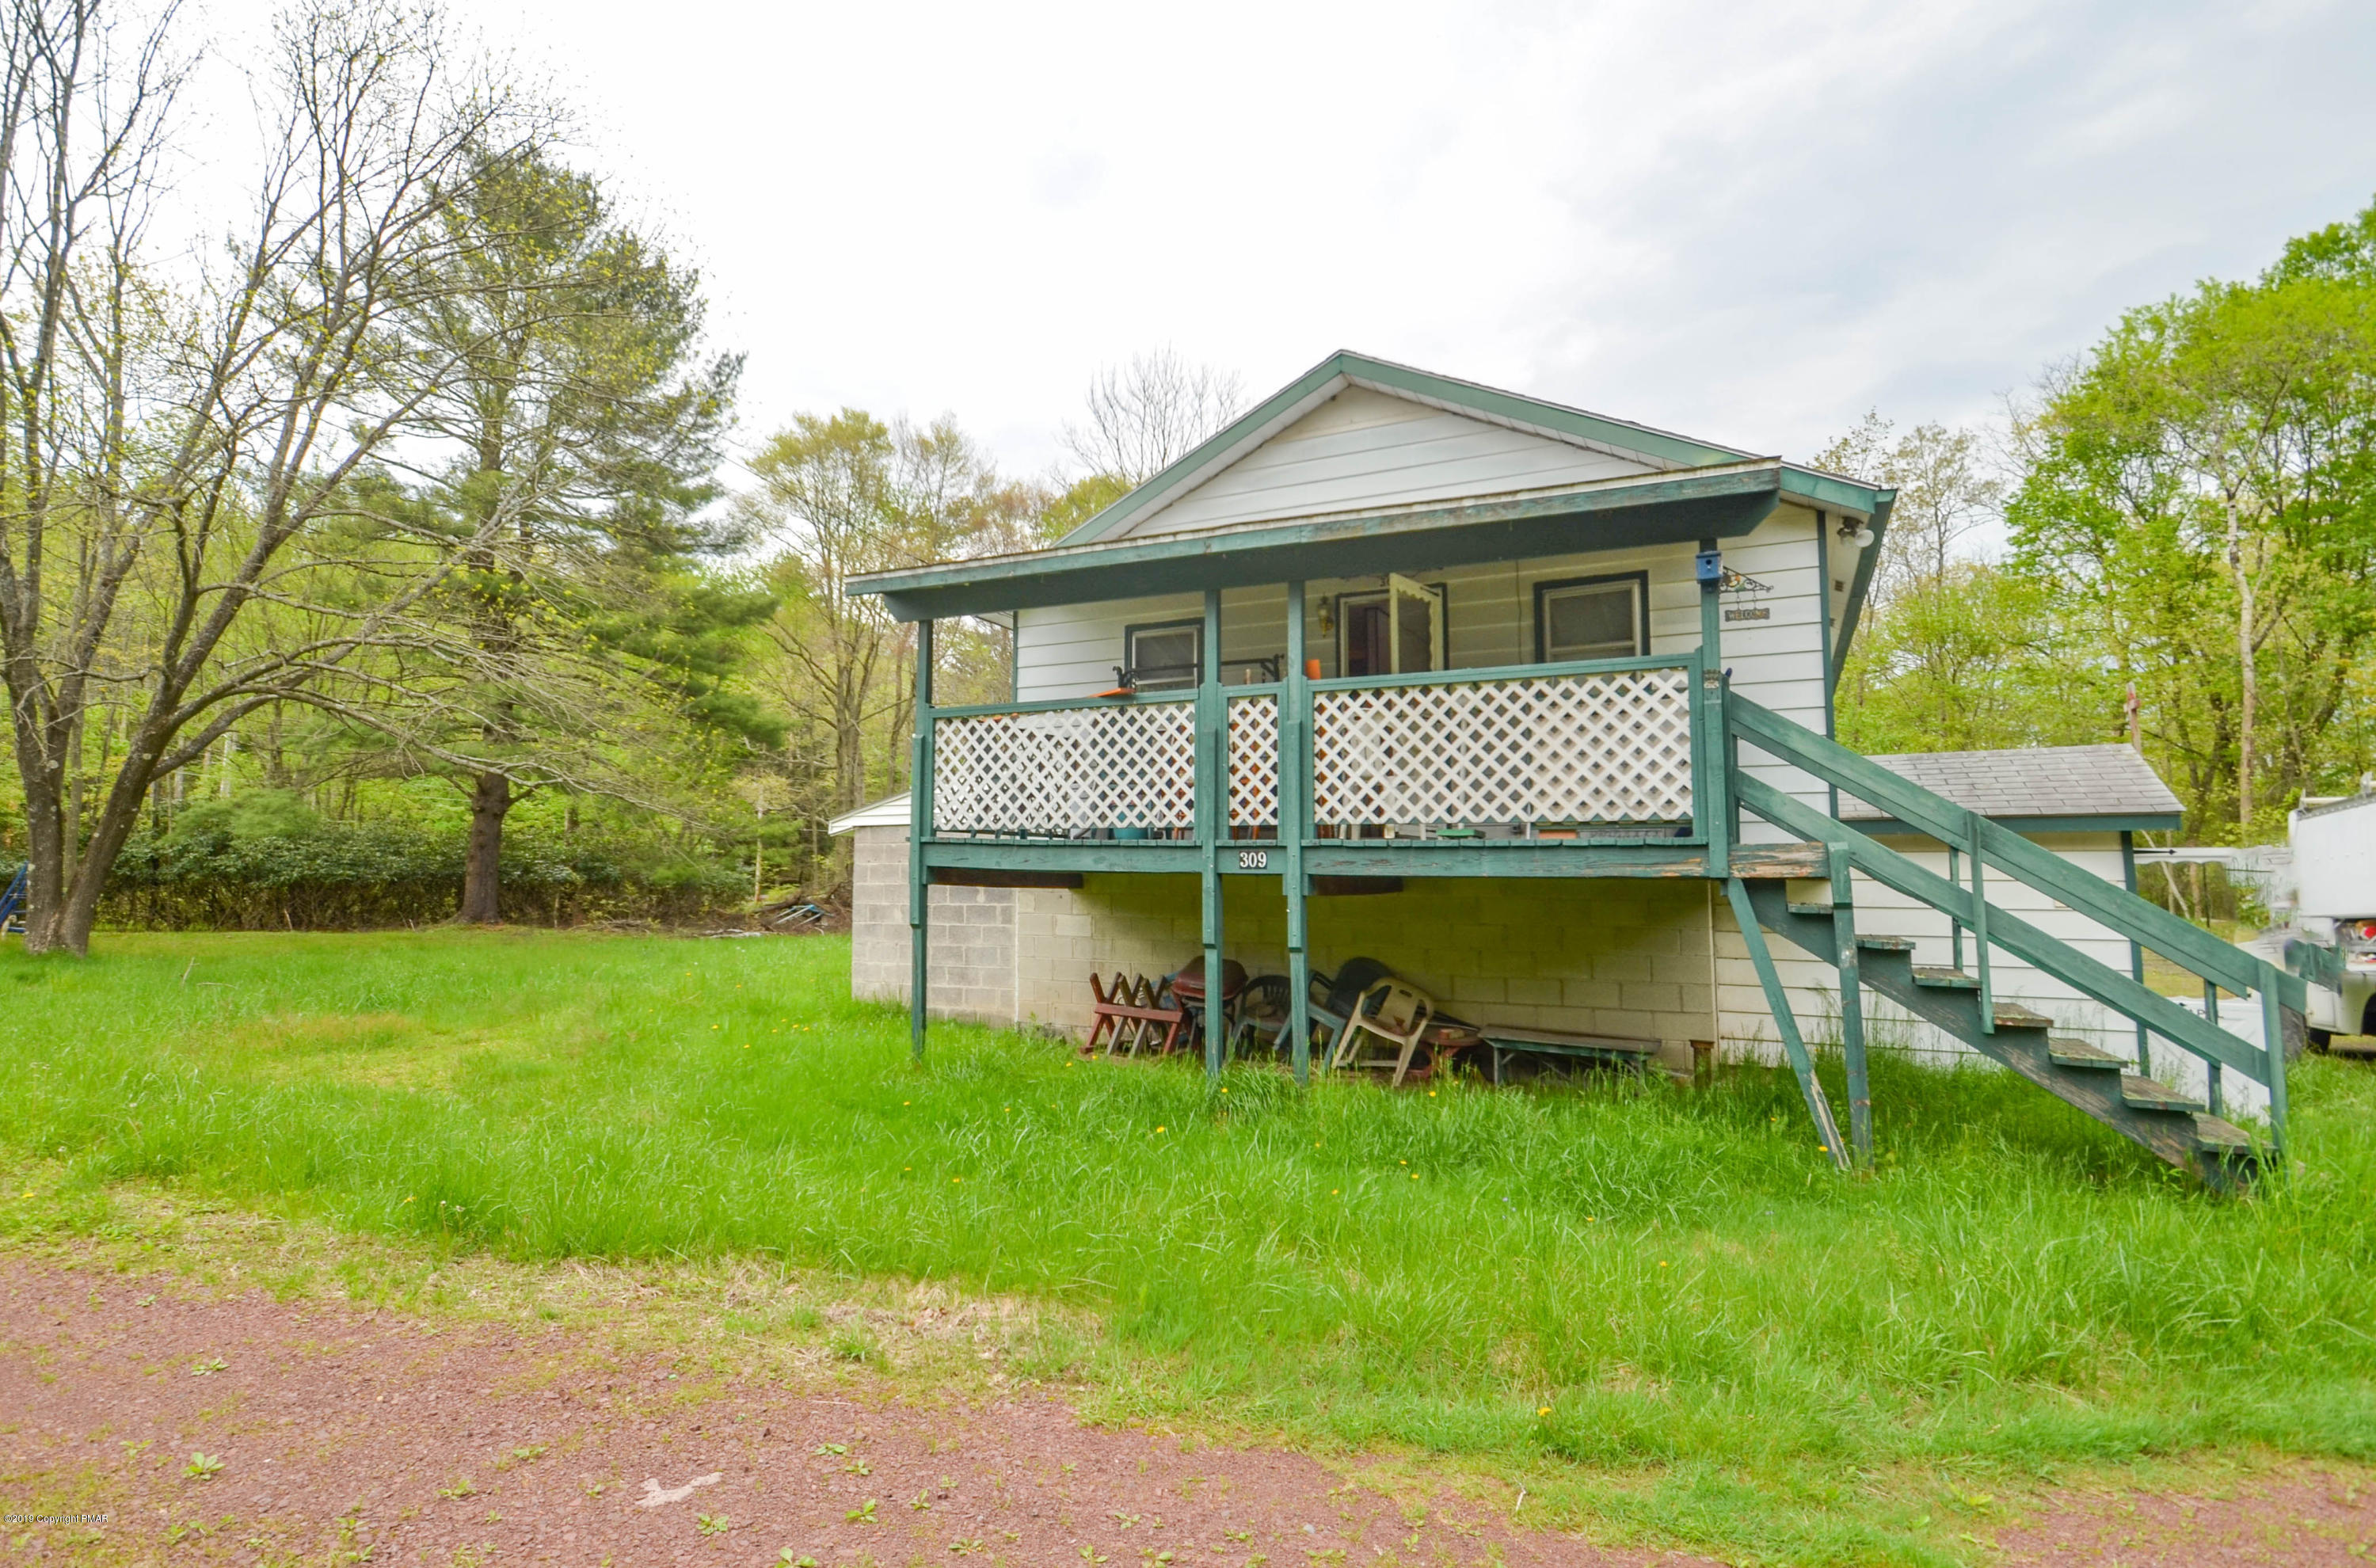 309 Middleburg Rd, White Haven, PA 18661